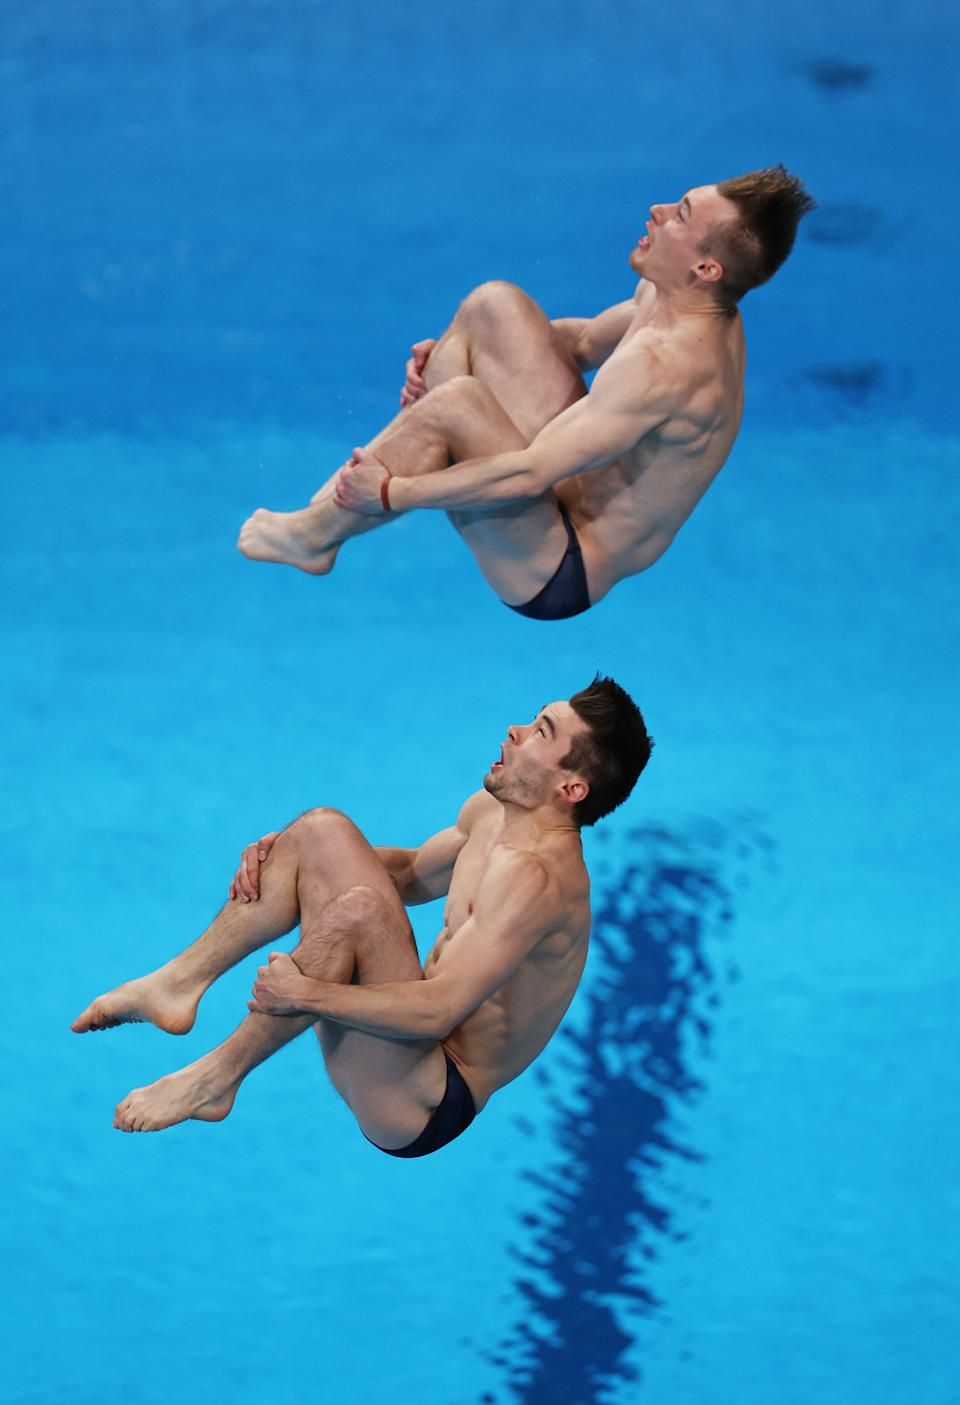 <p>TOKYO, JAPAN - JULY 28: Daniel Goodfellow and Jack Laugher of Team Great Britain compete during the Men's Synchronised 3m Springboard final on day five of the Tokyo 2020 Olympic Games at Tokyo Aquatics Centre on July 28, 2021 in Tokyo, Japan. (Photo by Tom Pennington/Getty Images)</p>